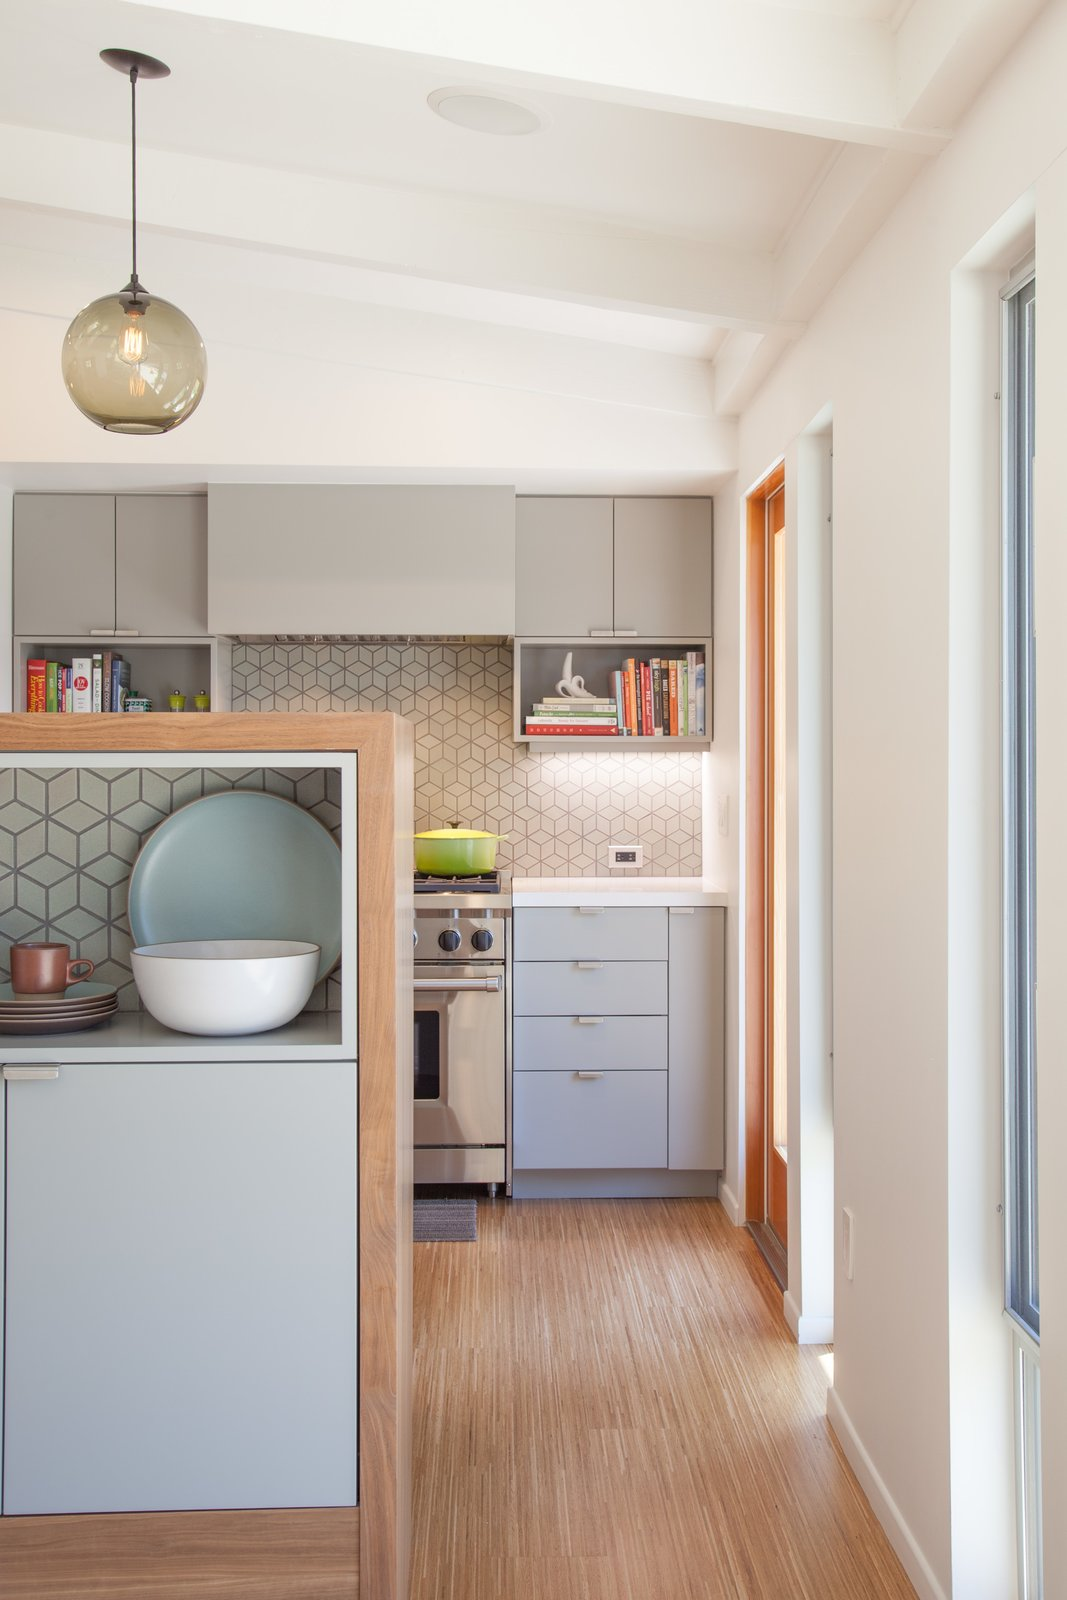 Photo 4 of 5 in Pinterest Inspired Home Includes Niche Modern Kitchen Pendant Lights